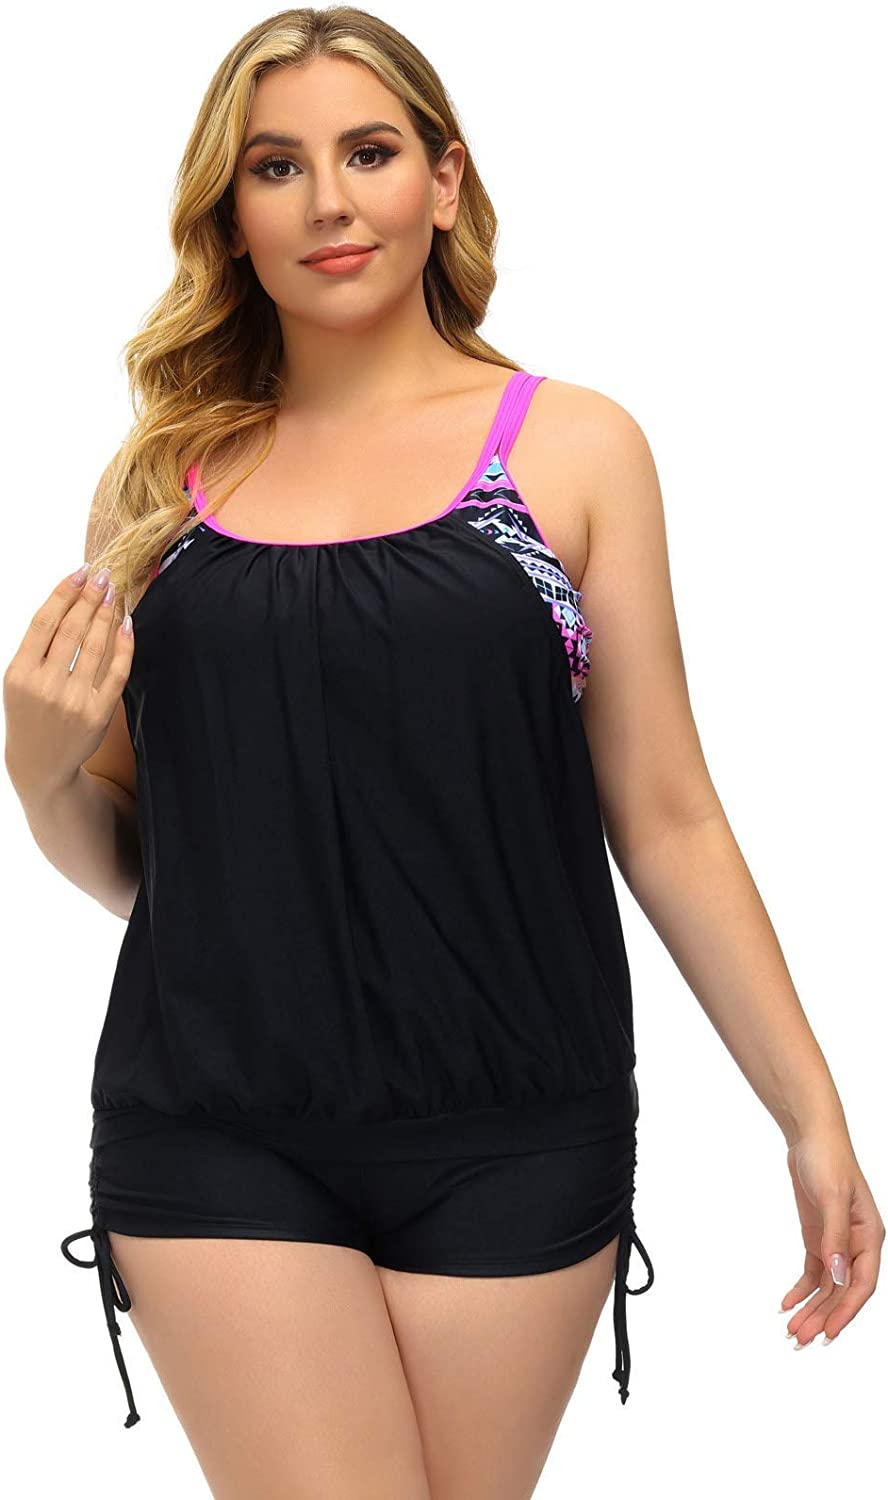 Hanna Nikole Womens Plus Size Striped Printed Strappy Tankini Top with Shorts Two Piece Swimsuit